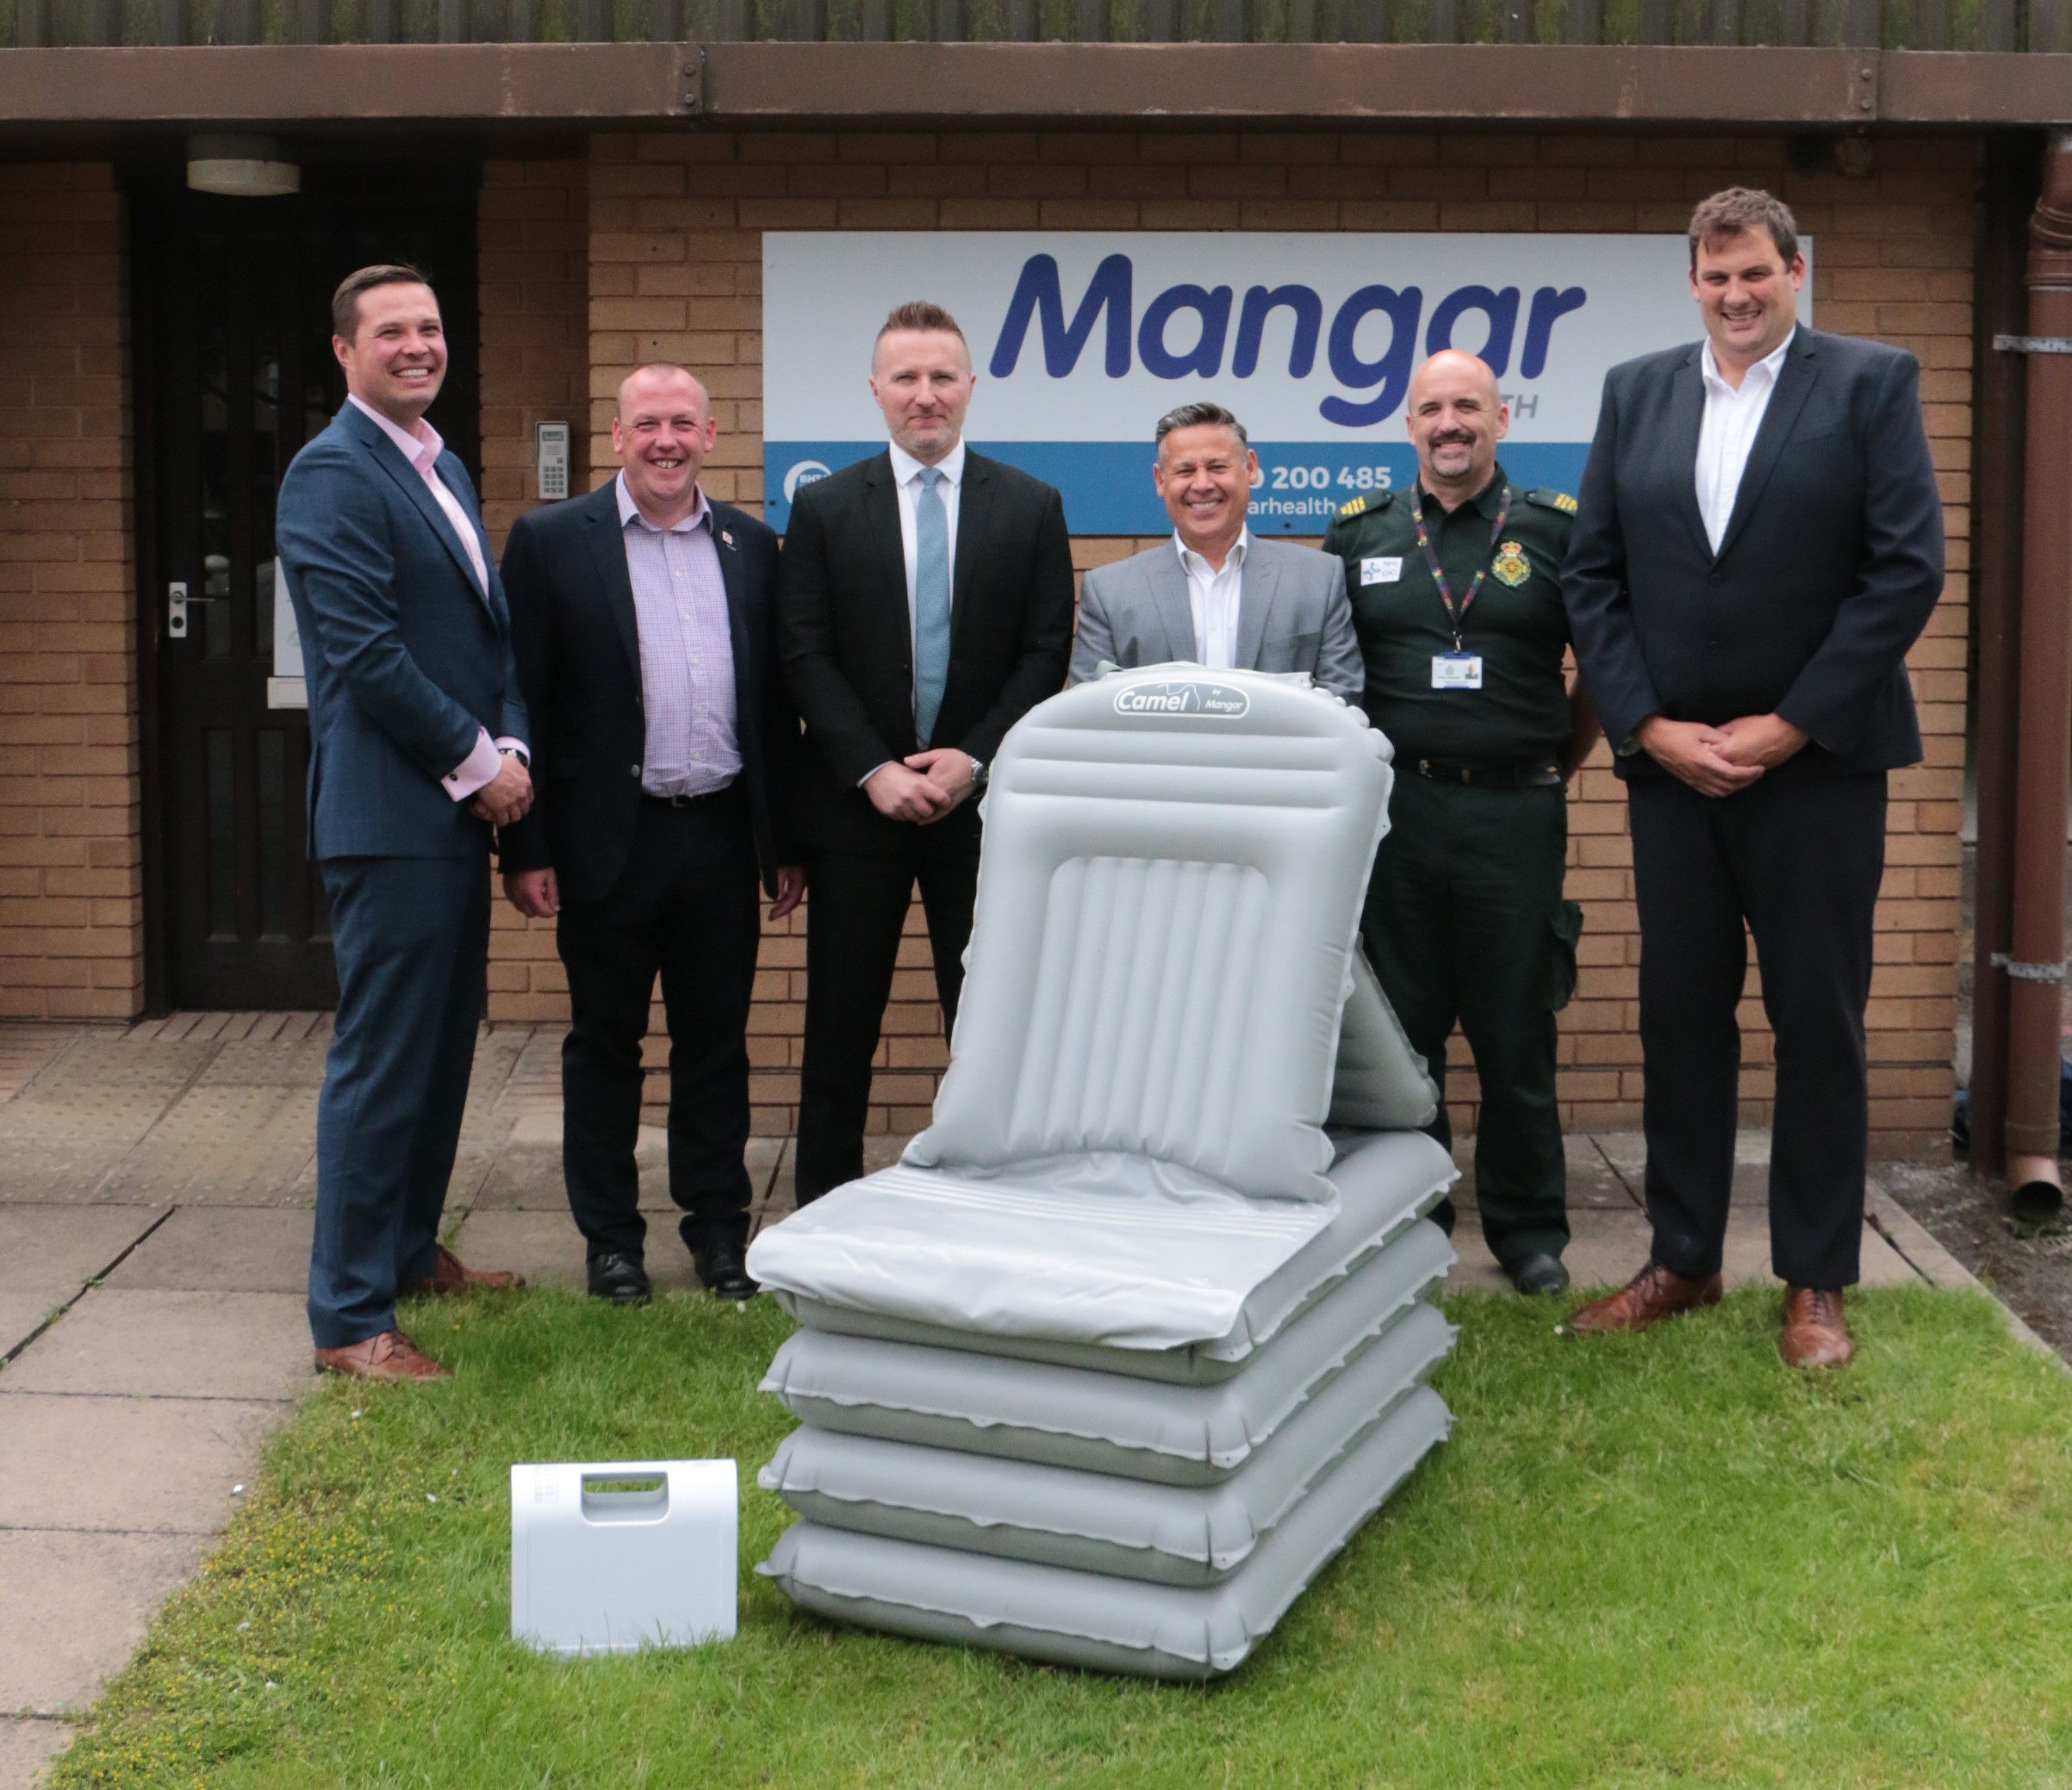 Mangar Health Welcomes The Welsh Ambulance Service To Their Manufacturing Facility In Wales